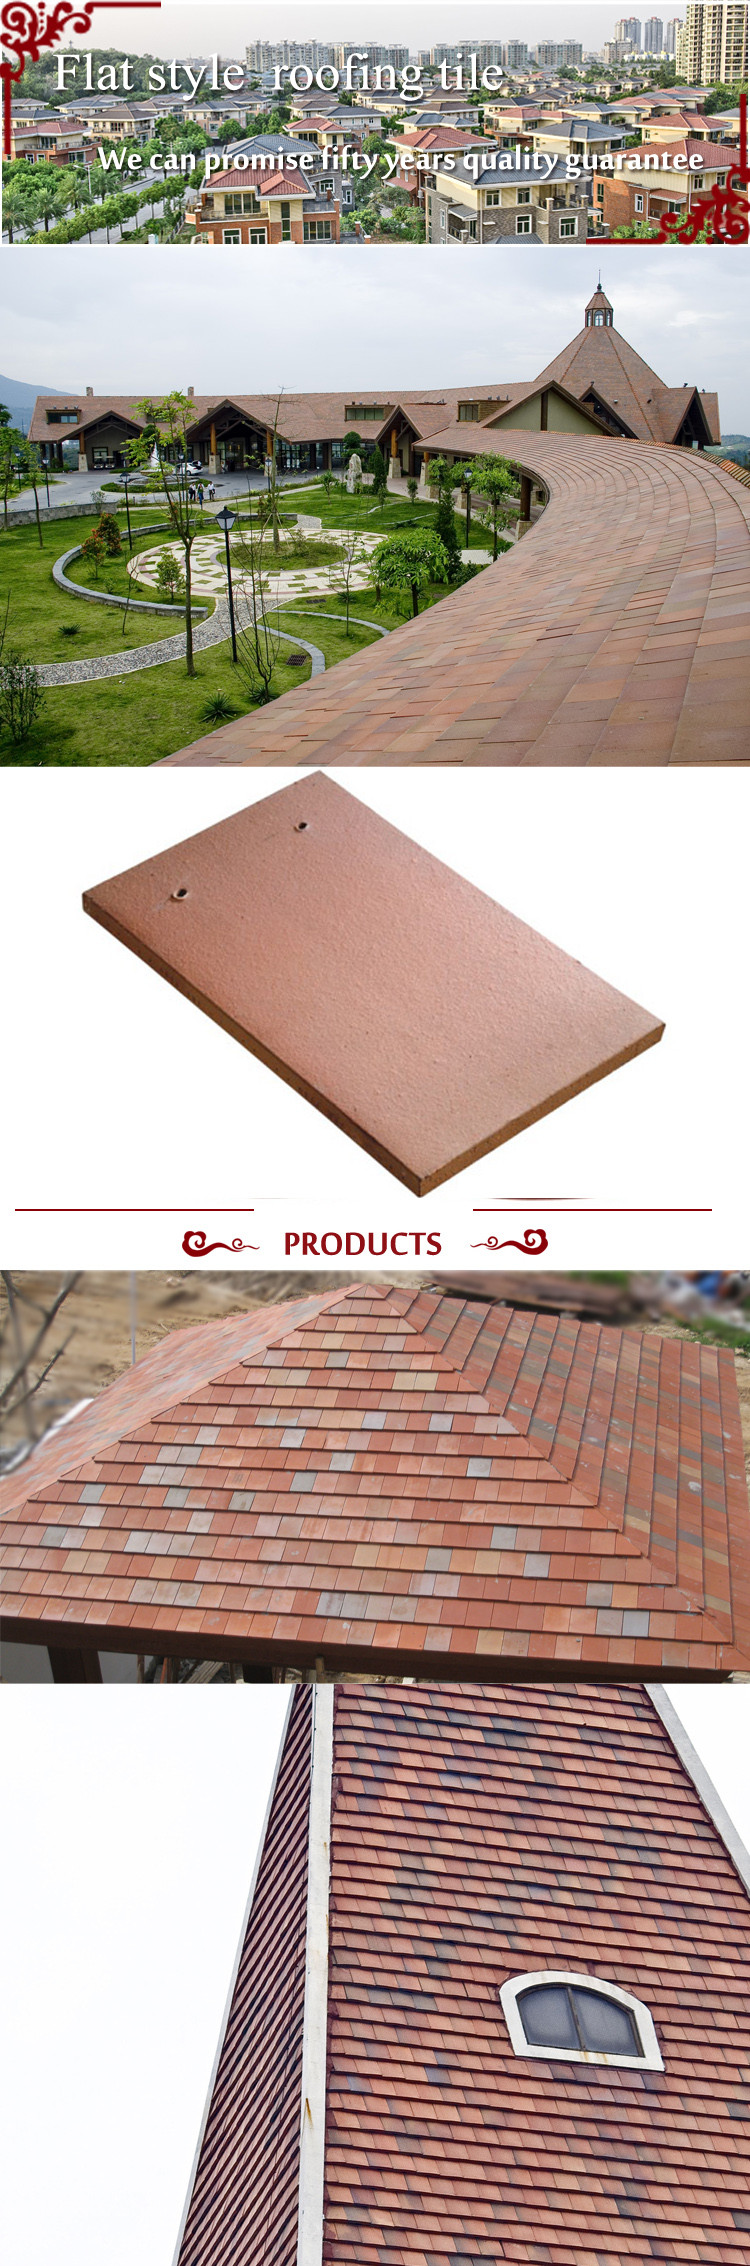 E1004 ceramic roof tilehouse roof cover materialsitalian roof e1004 ceramic roof tilehouse roof cover materialsitalian roof tiles manufacturers dailygadgetfo Image collections